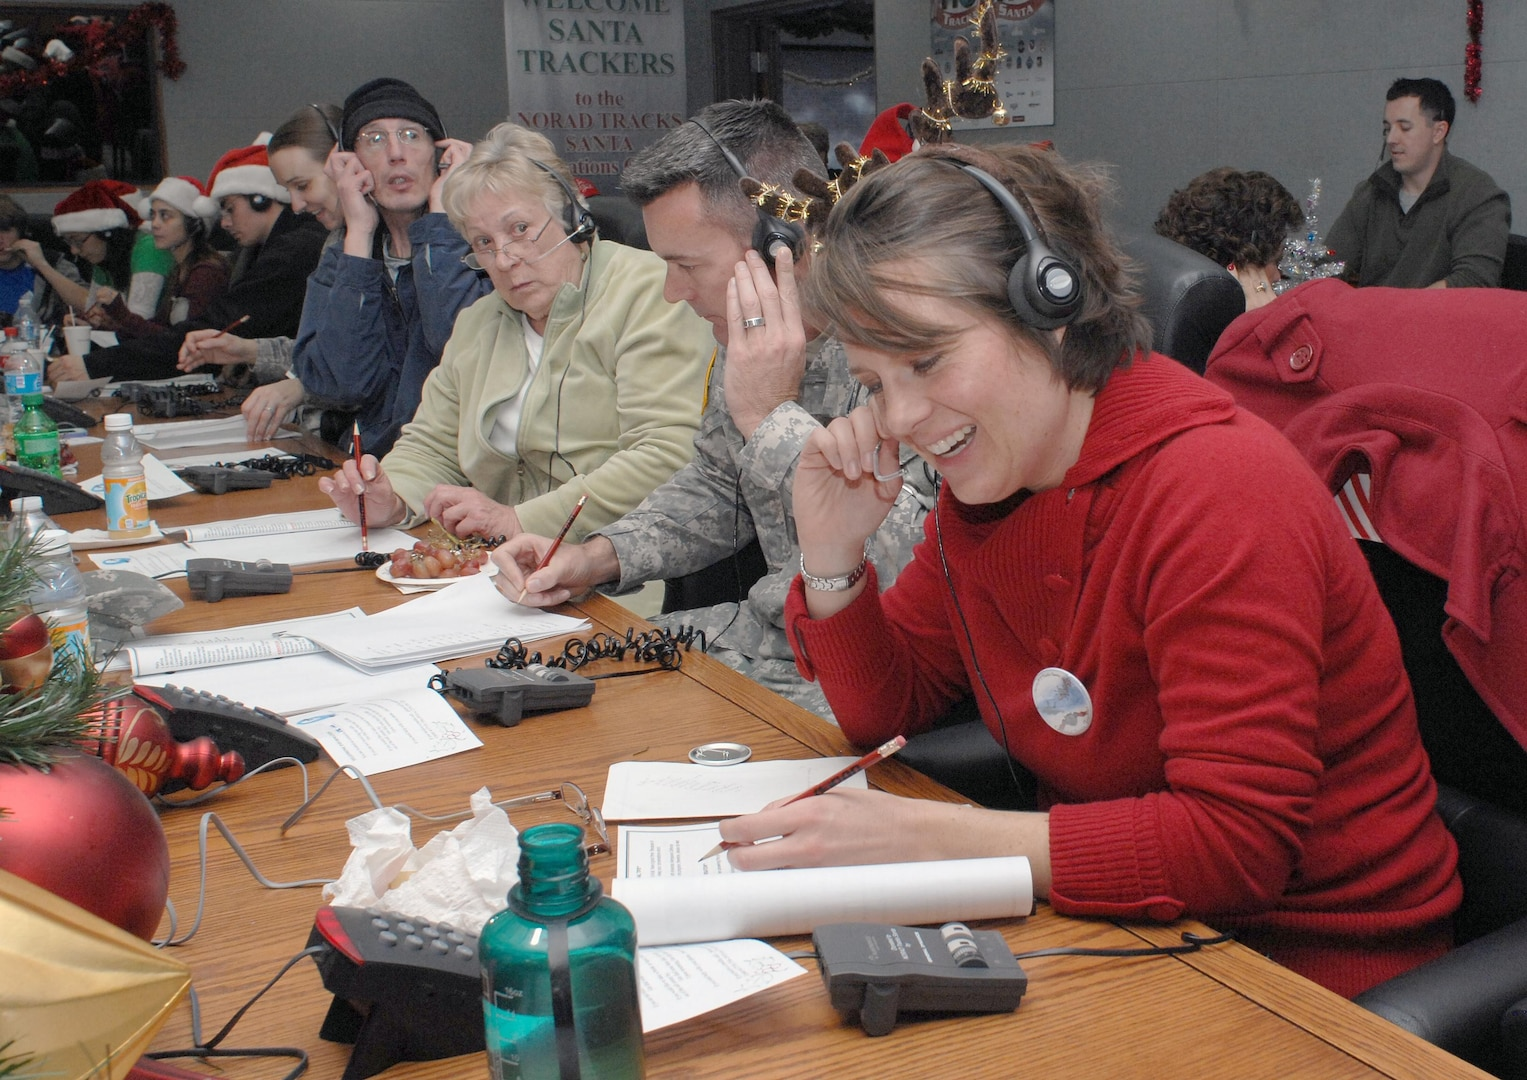 PETERSON AIR FORCE BASE, Colo. - Jennifer Eckels, first time NORAD Tracks Santa volunteer, takes calls at the NORAD Tracks Santa Operations Center. One of the calls Eckels received was from a little boy in Missouri who recently lost his sister. He wanted to know when Santa delivers presents to Heaven. Eckels told him that children in Heaven get their presents first. (US. Air Force photo by Tech. Sgt. Thomas J. Doscher)